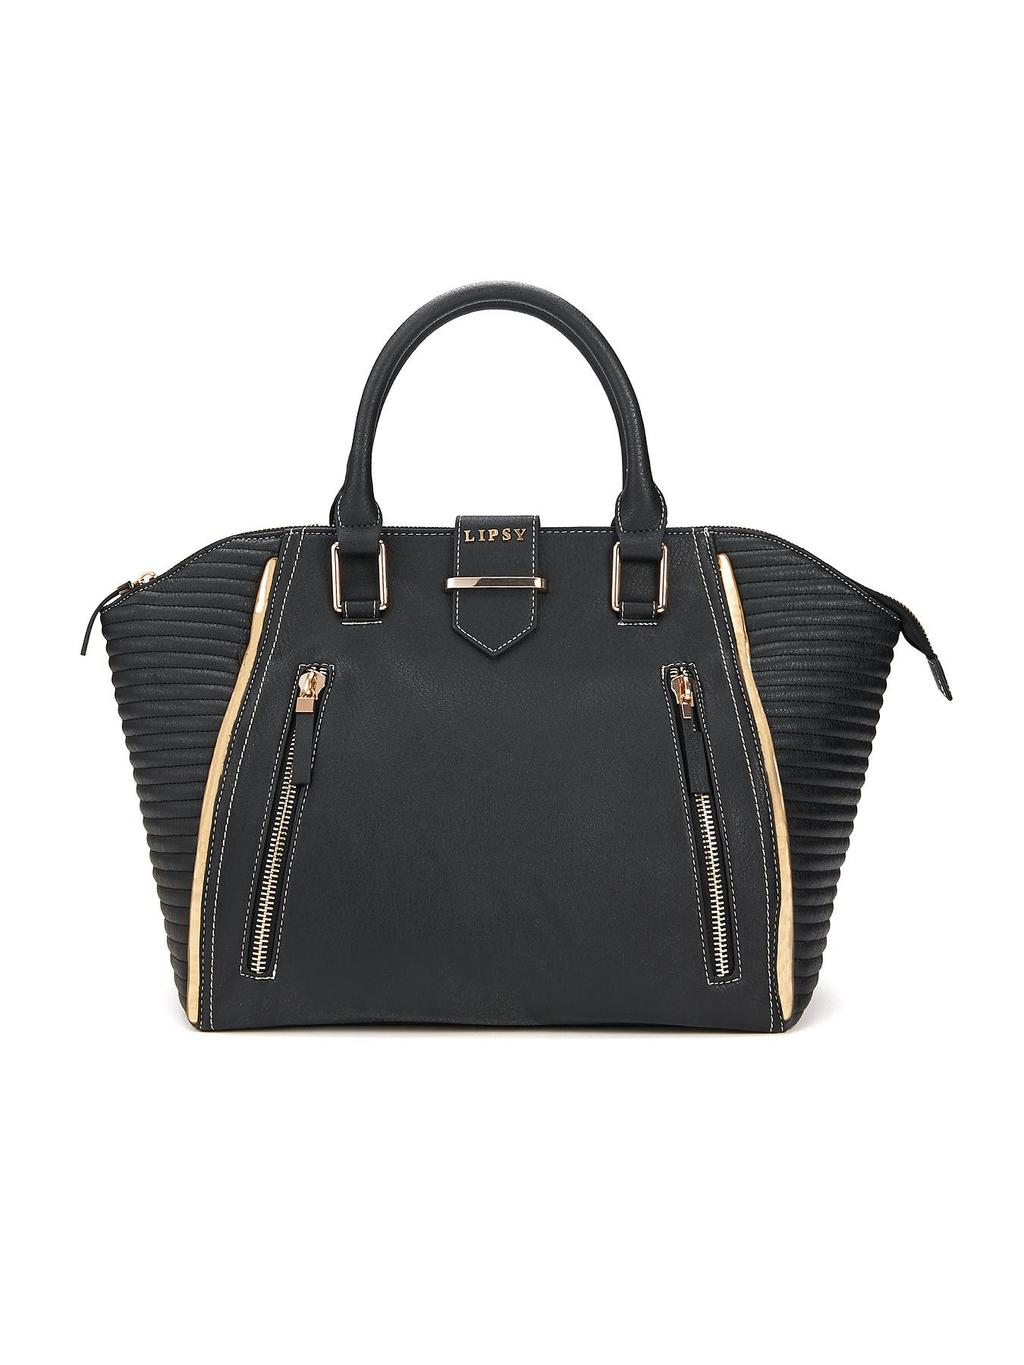 Tote Bag, Black - secondary colour: gold; predominant colour: black; occasions: casual, work, creative work; style: tote; length: handle; size: standard; material: faux leather; embellishment: quilted; pattern: plain; finish: plain; season: a/w 2014